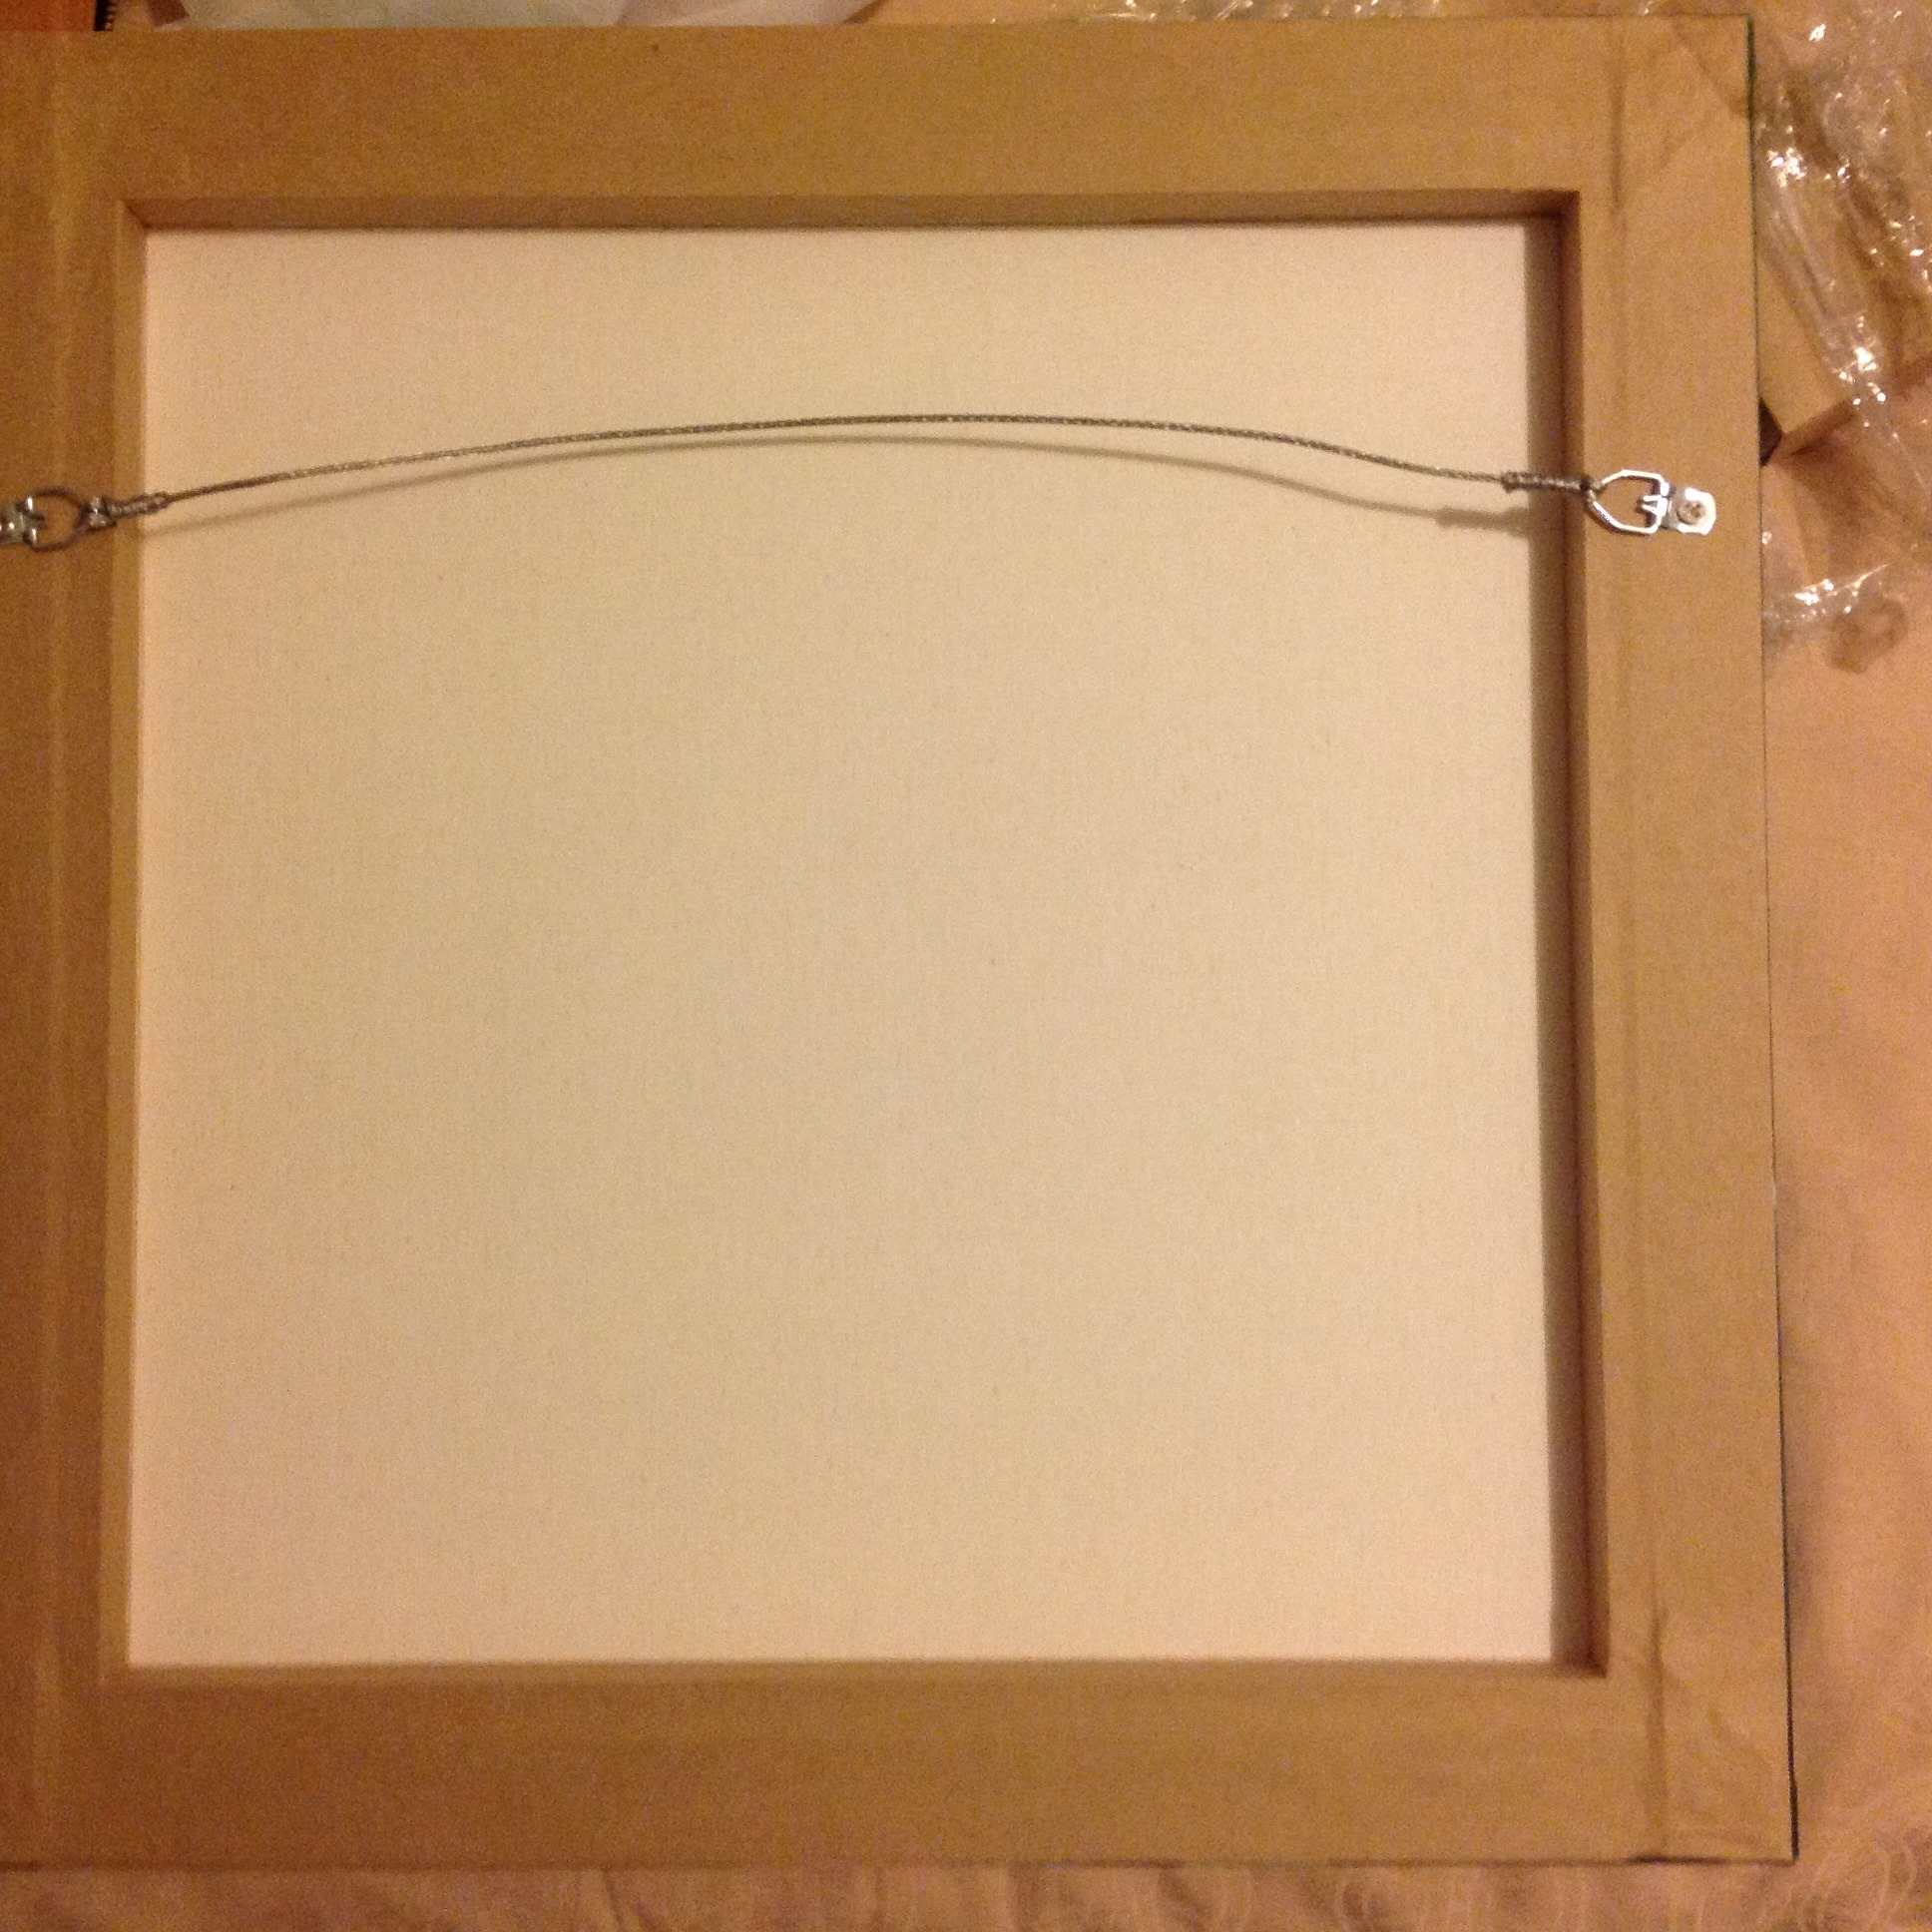 READY TO HANG- high quality frames